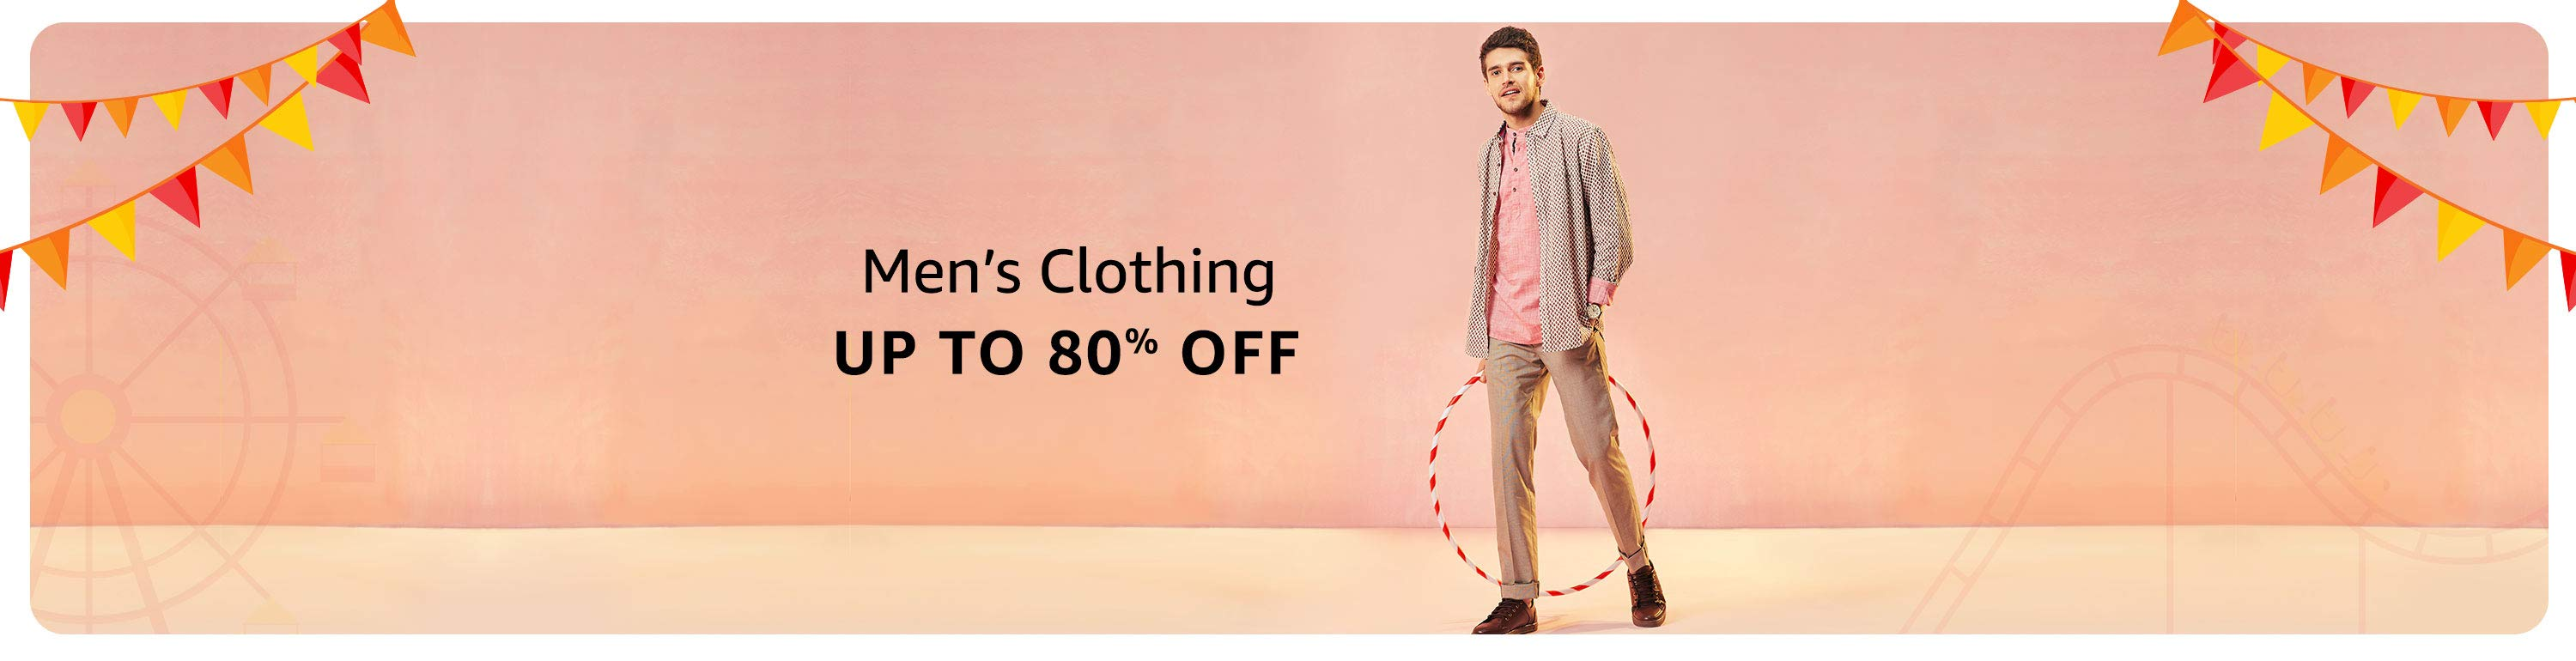 men's clothing offer on amazon